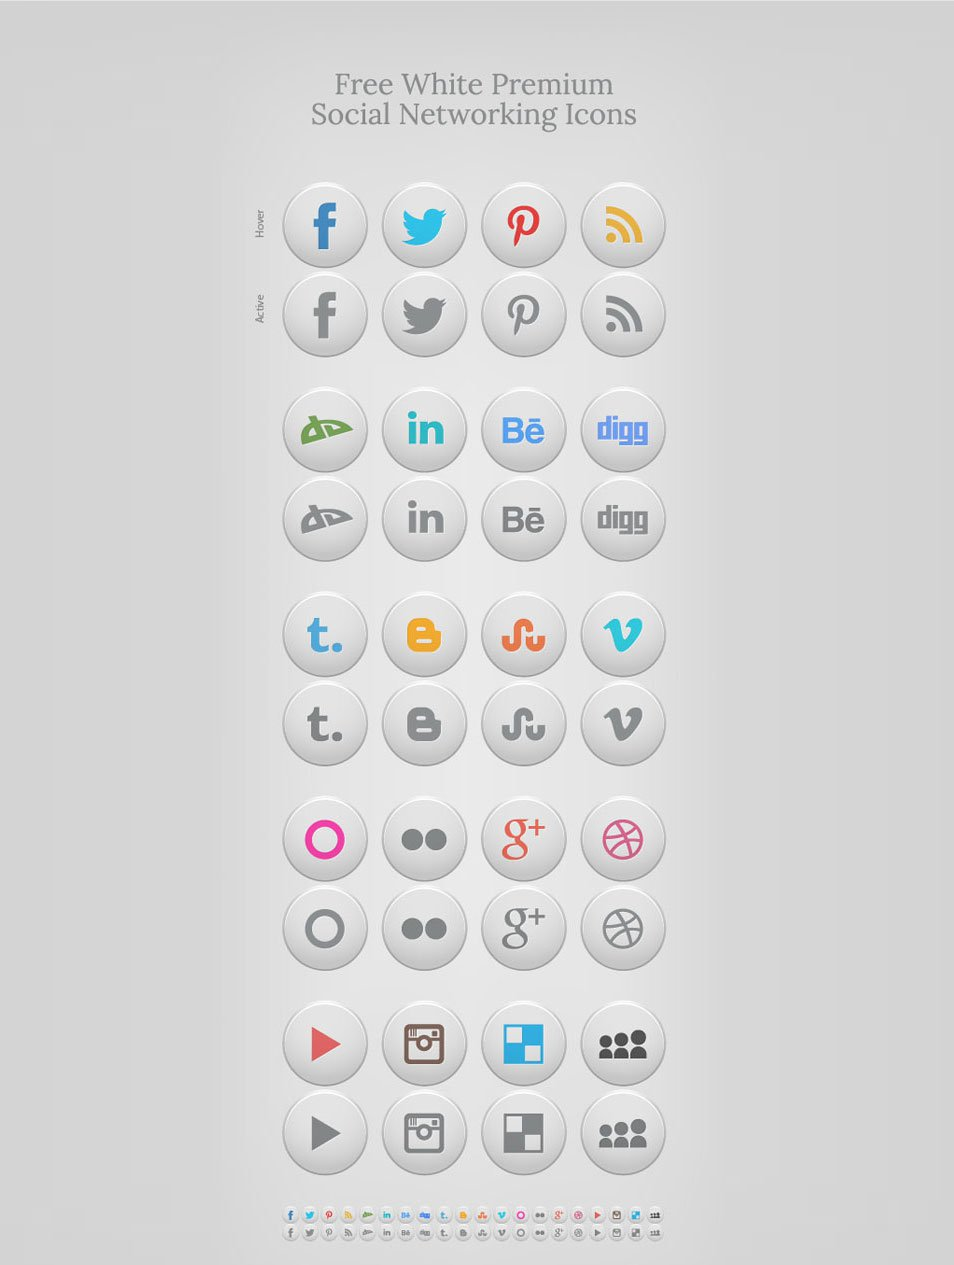 Iconos en hd para todo y gratis hipermegapost links taringa collection of free social networking icons are that they can very well become the part and parcel of those blogs and websites that have white based buycottarizona